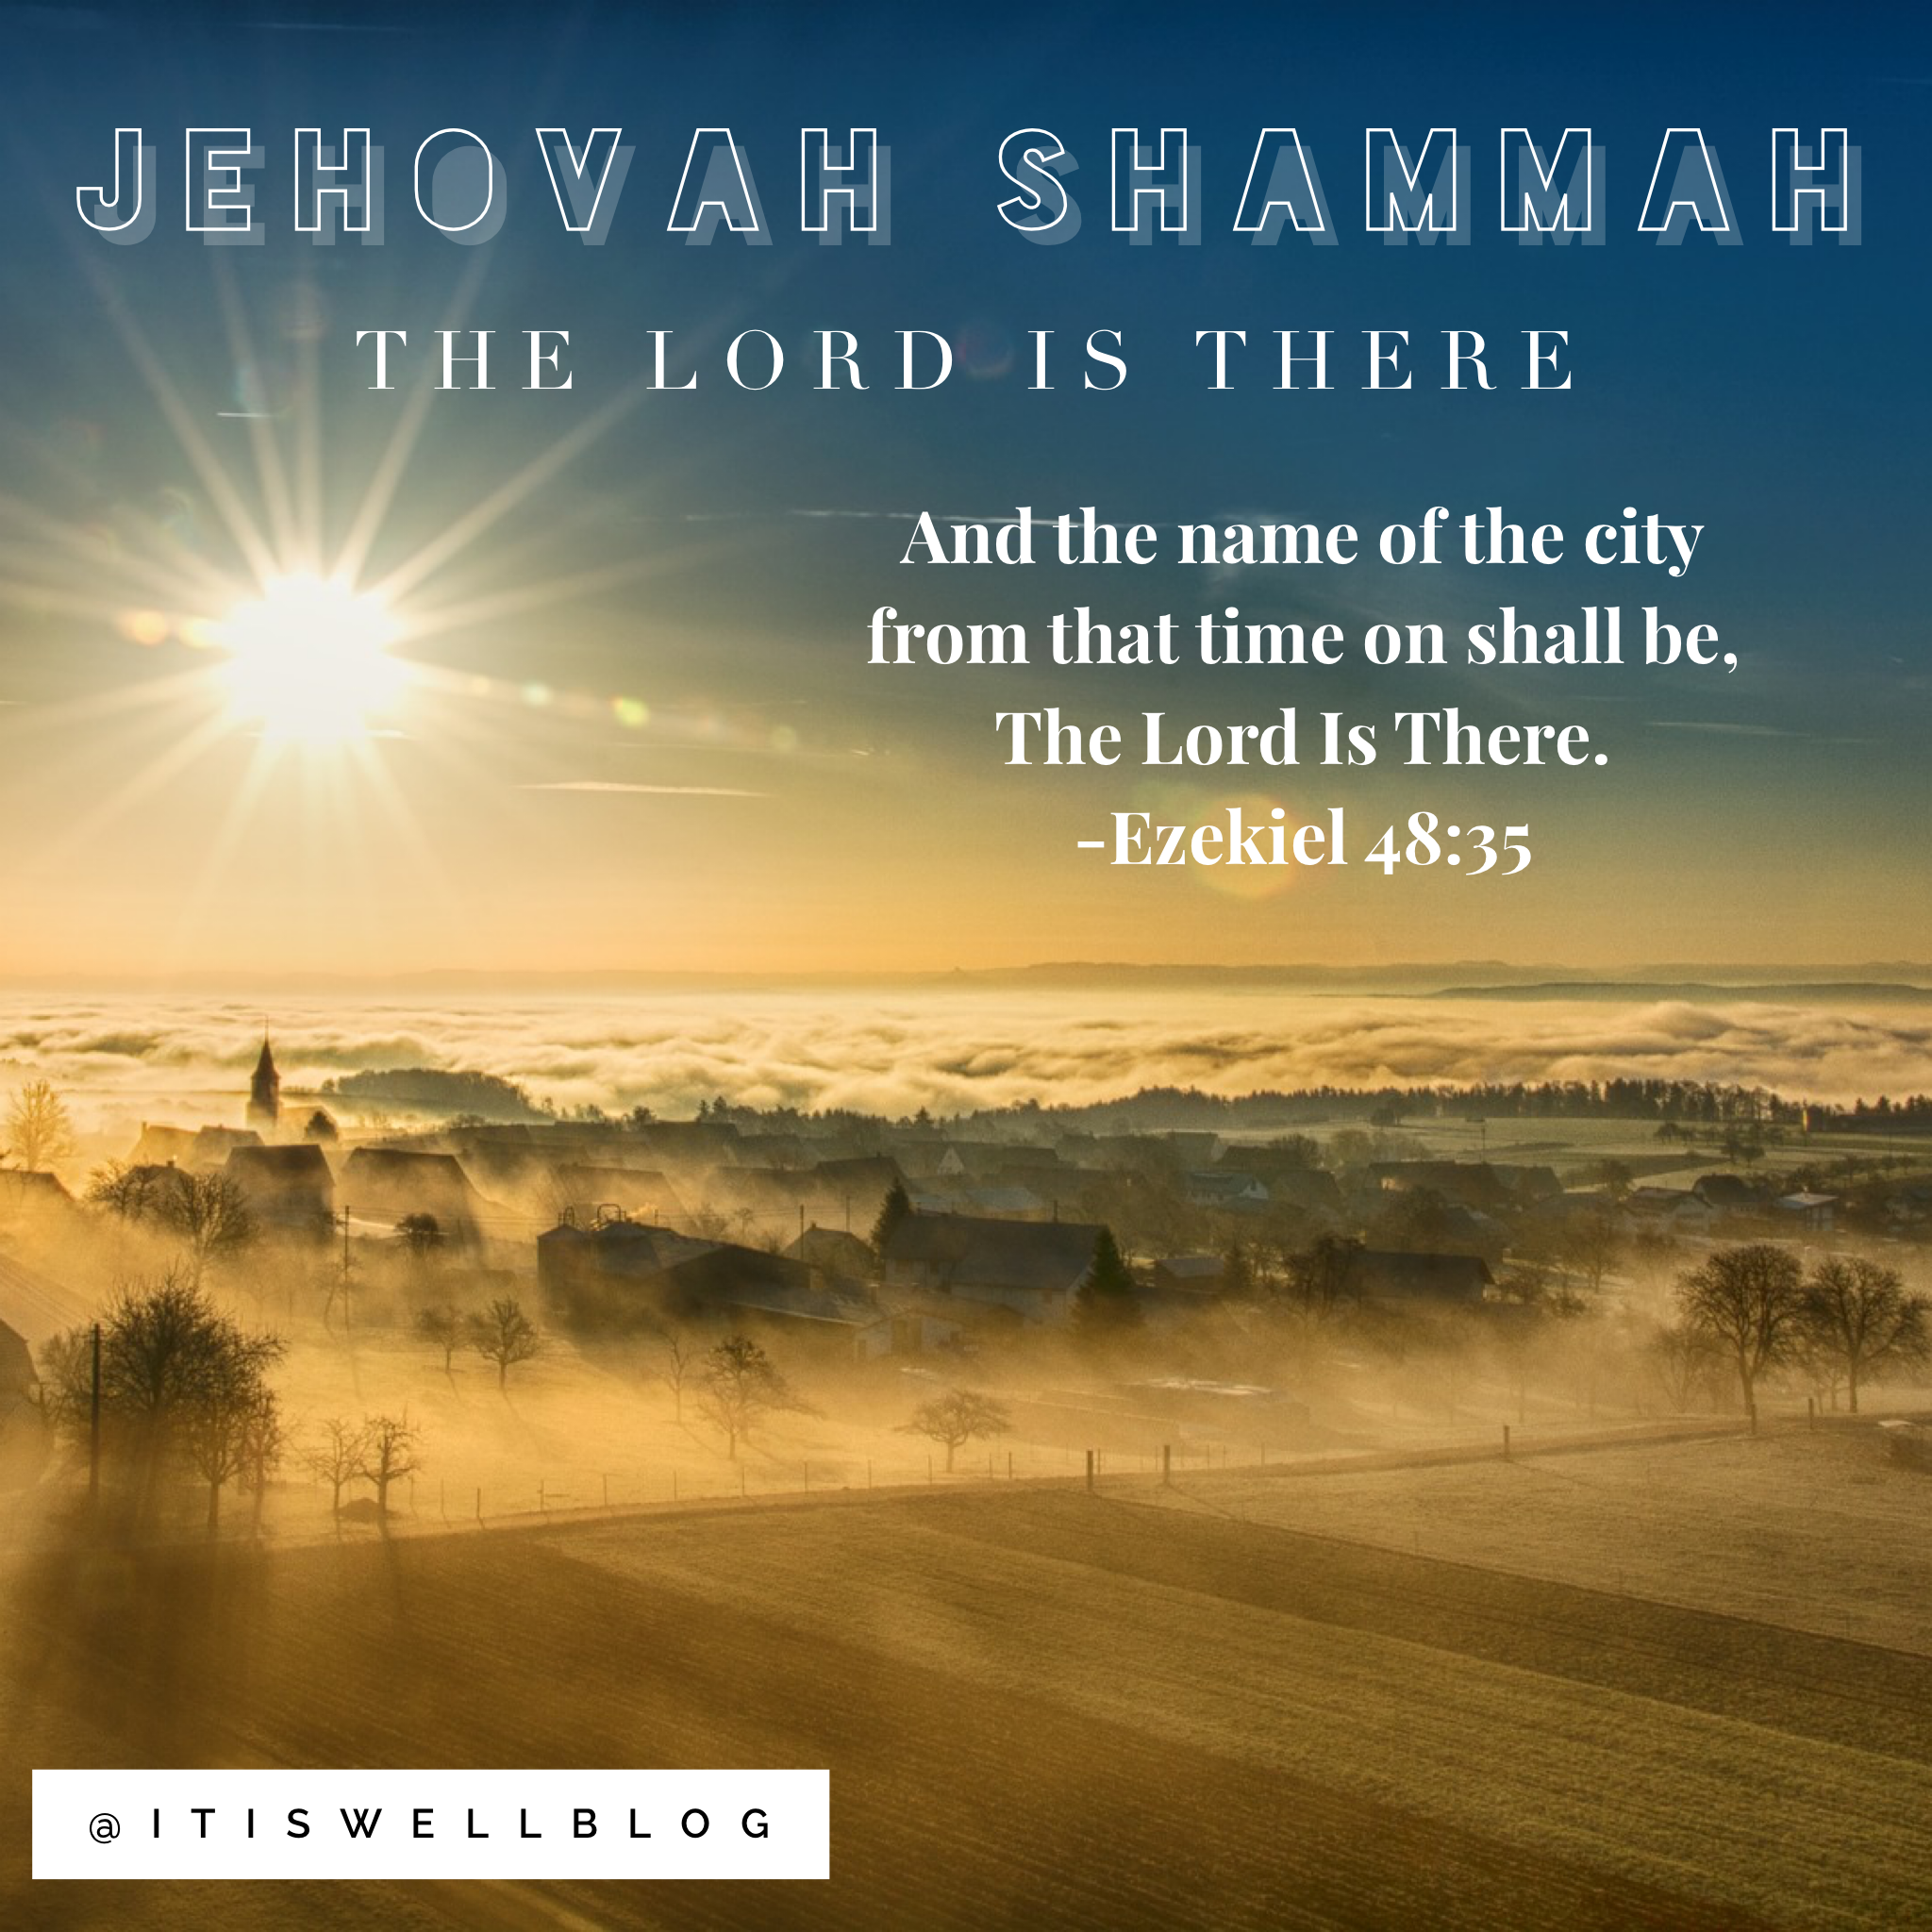 Jehovah Shammah, The Lord is There